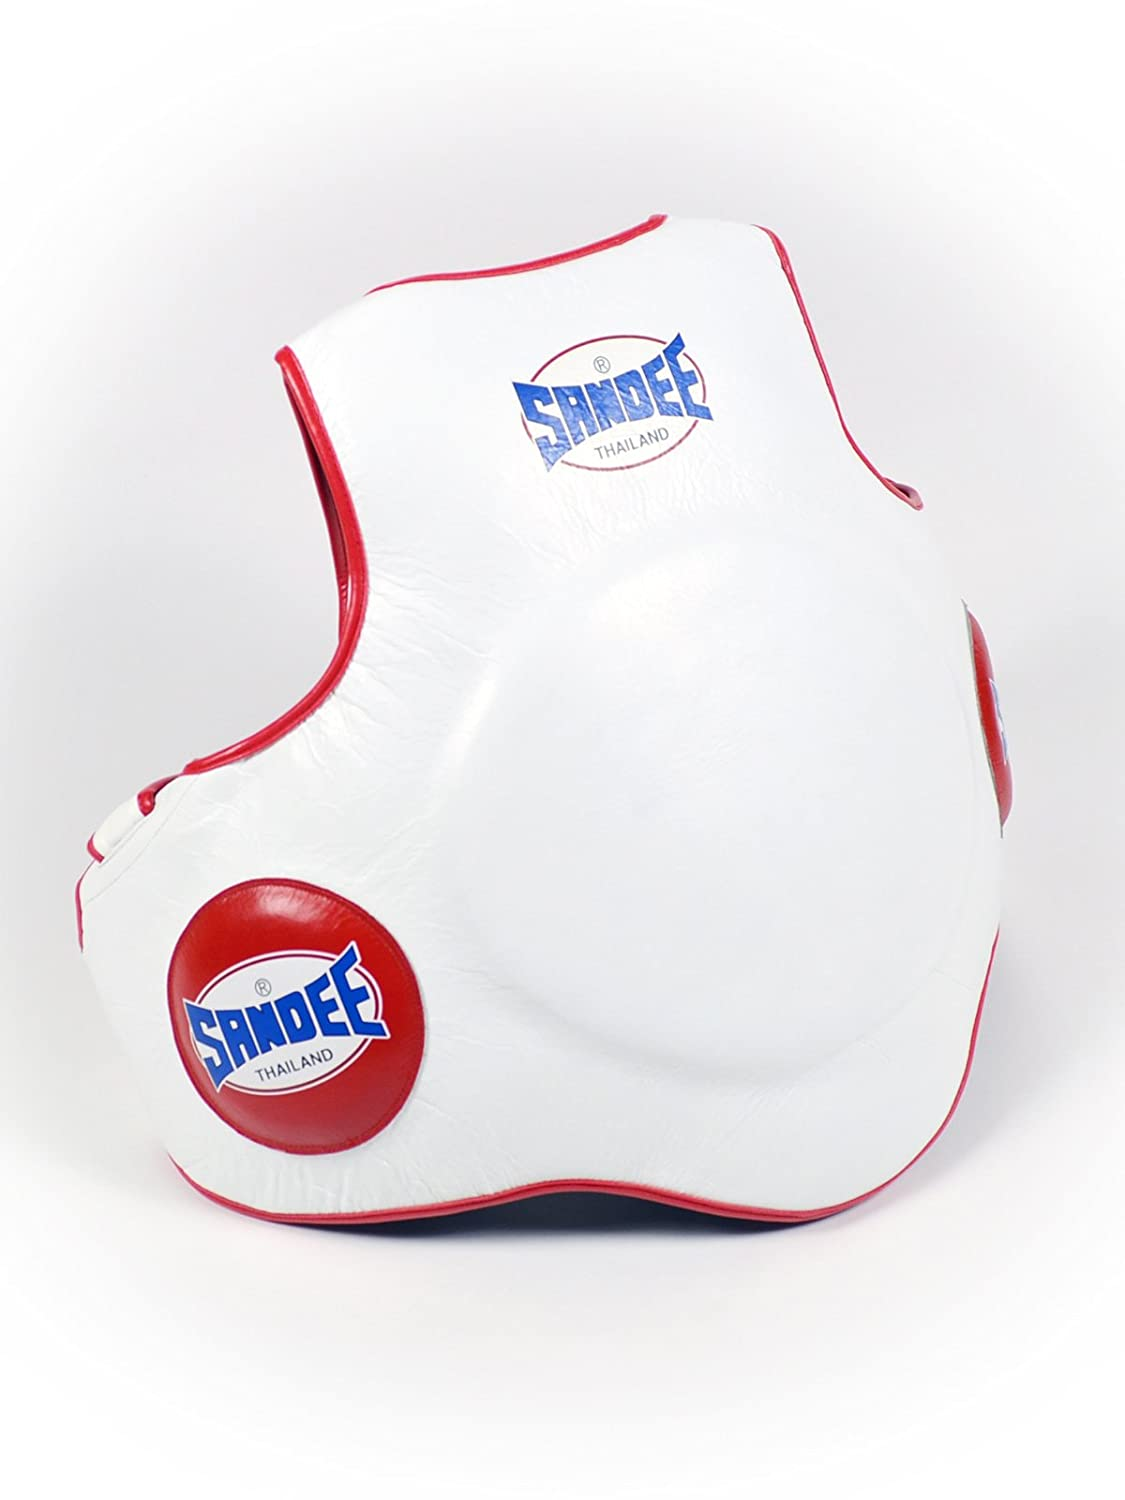 Sandee Leather Full Body Pad White & Red One Size